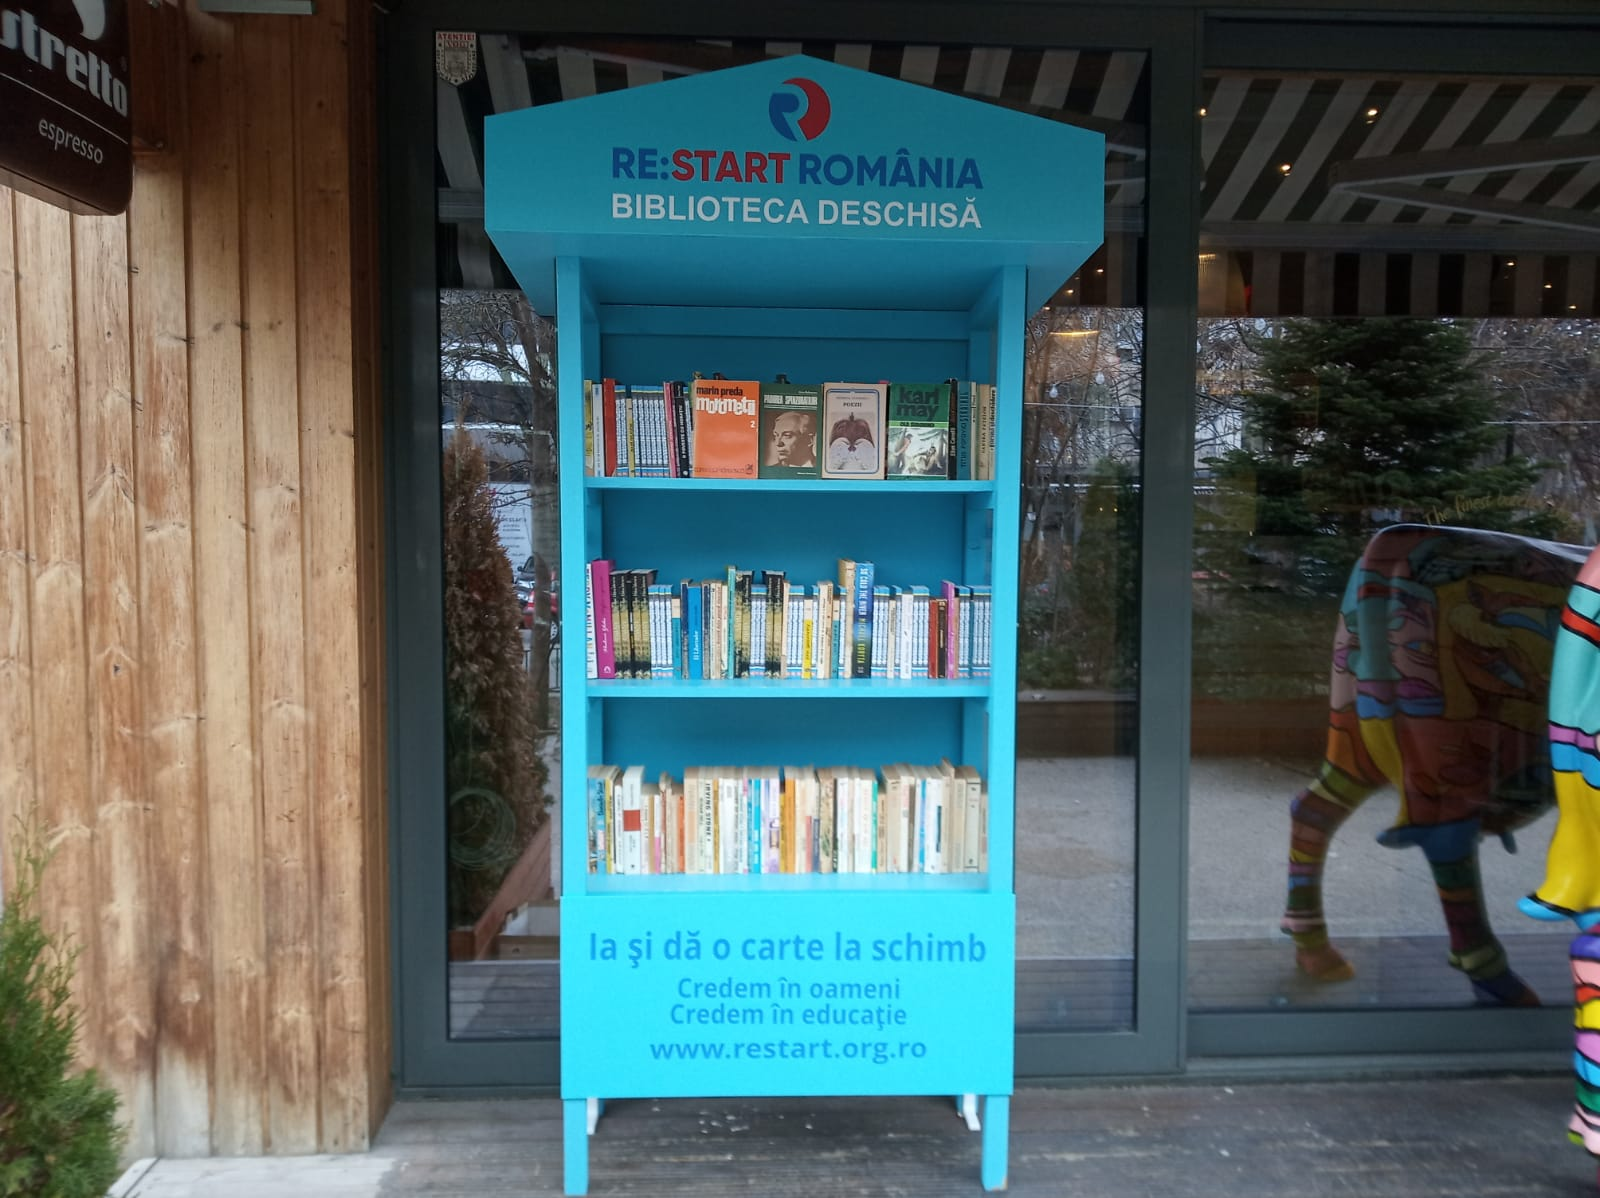 BIBLIOTECA DESCHISA